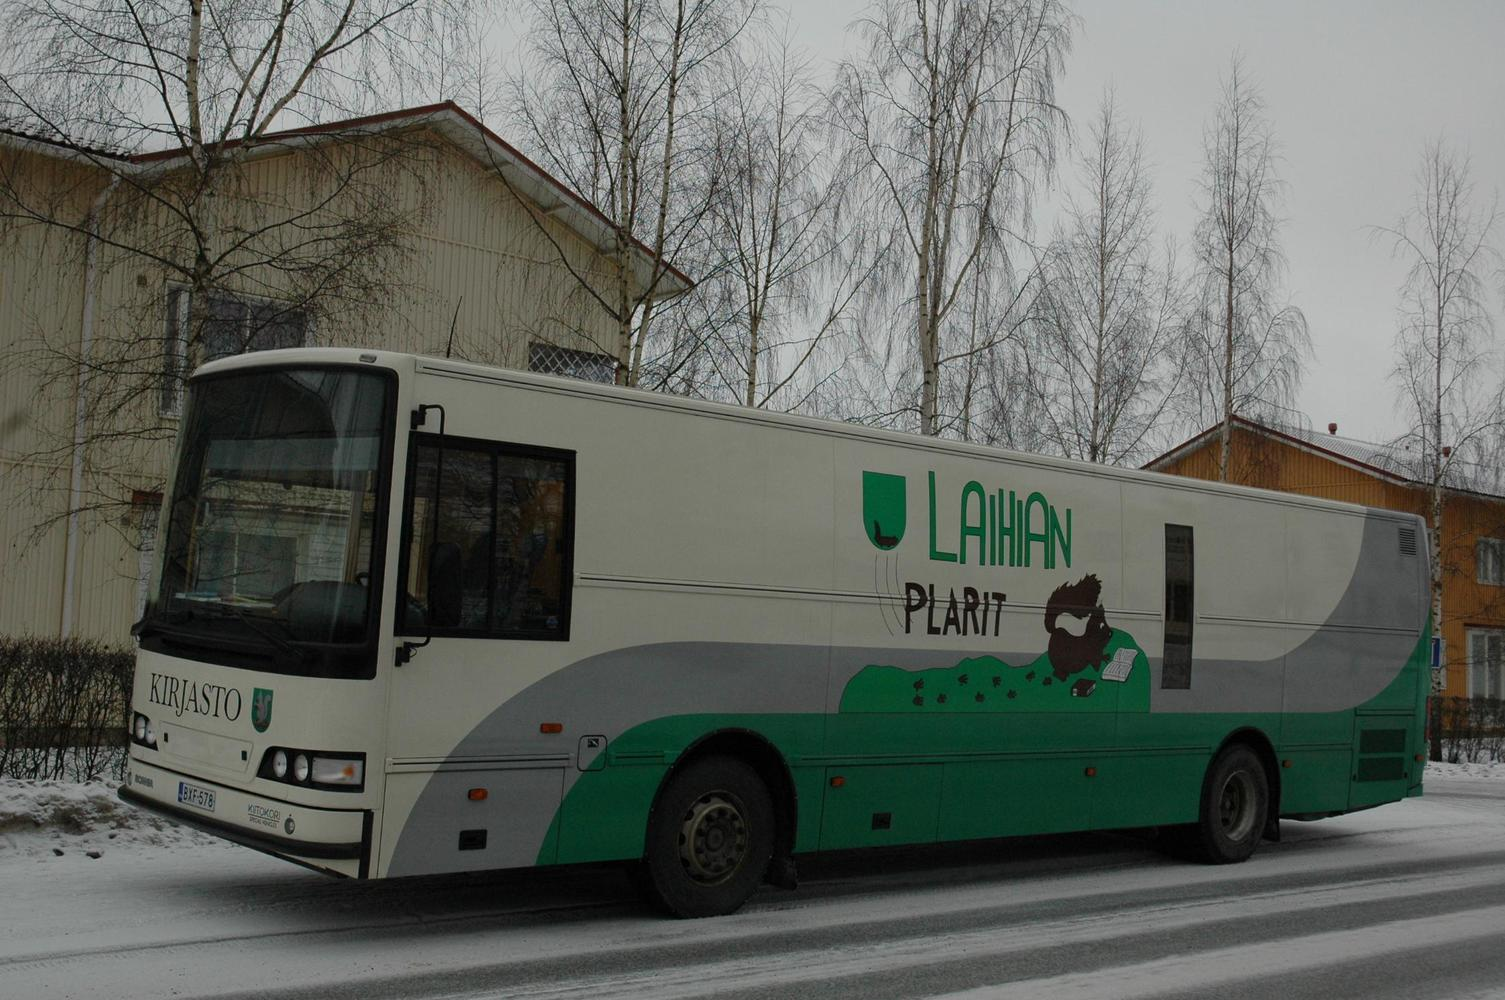 Mobile library Plarit II (Laihia)